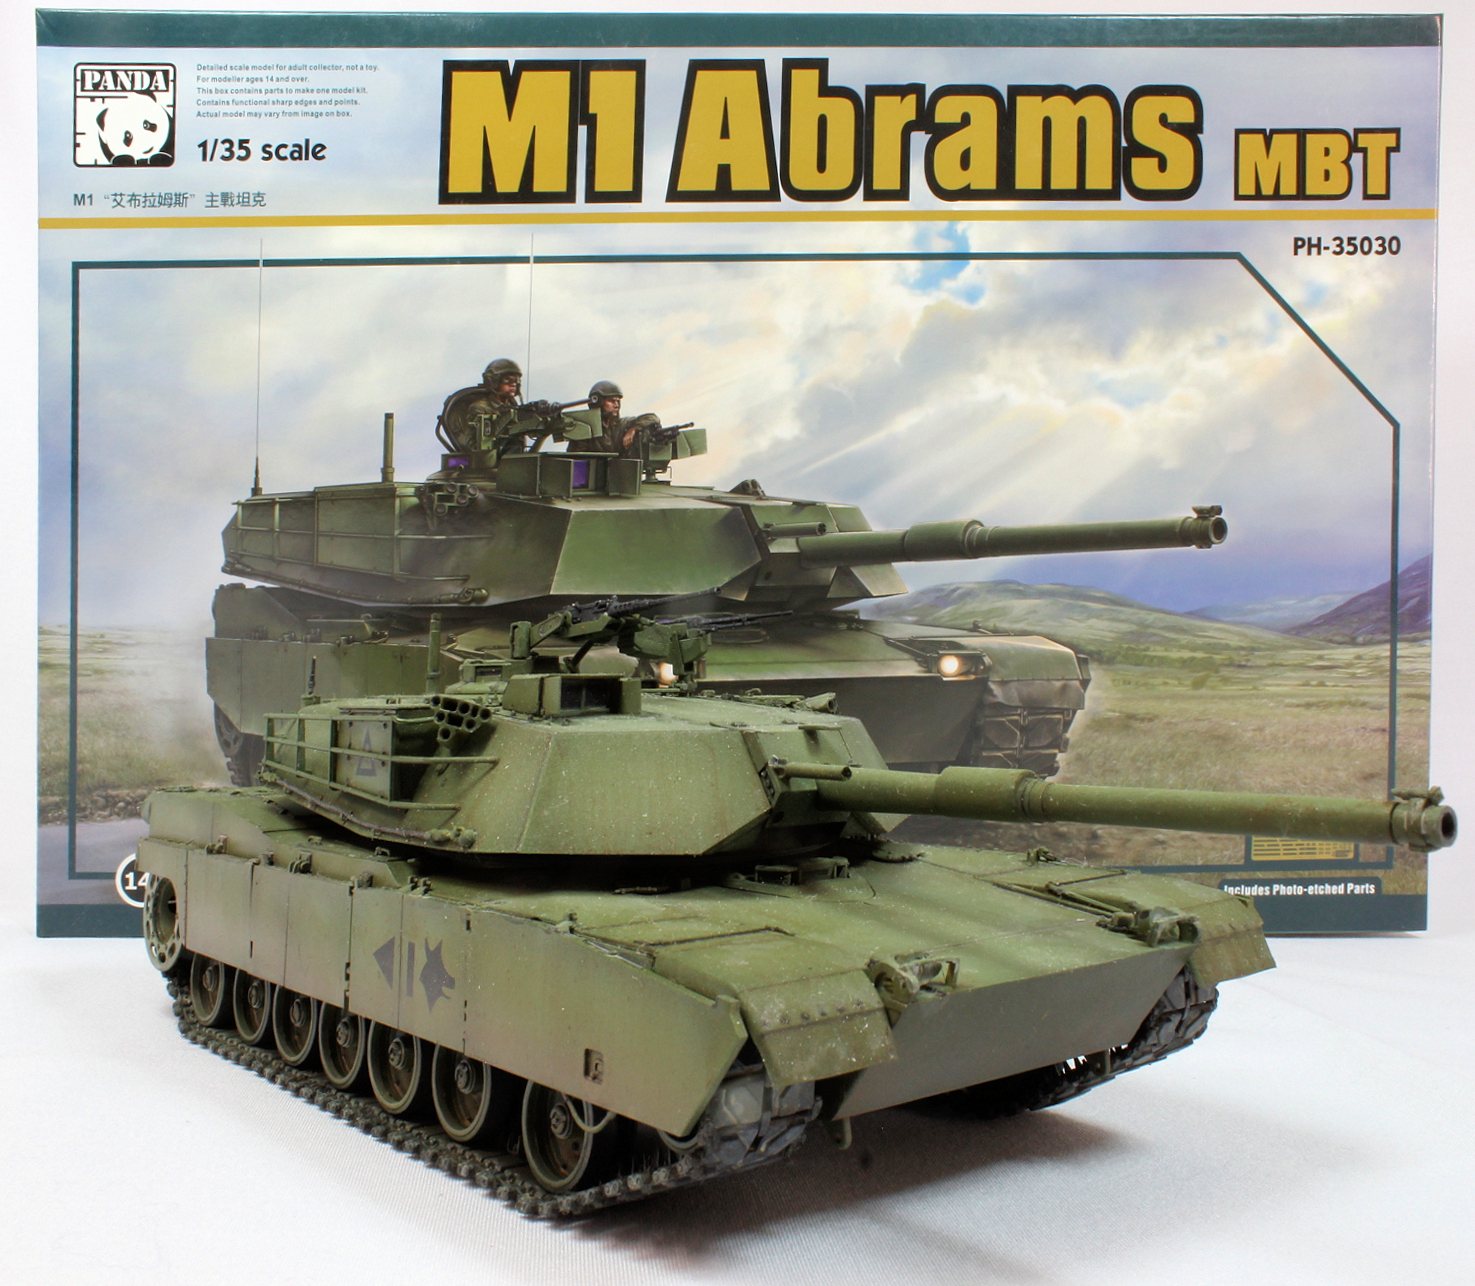 The Modelling News: Painting & Weathering Guide: 1/35th